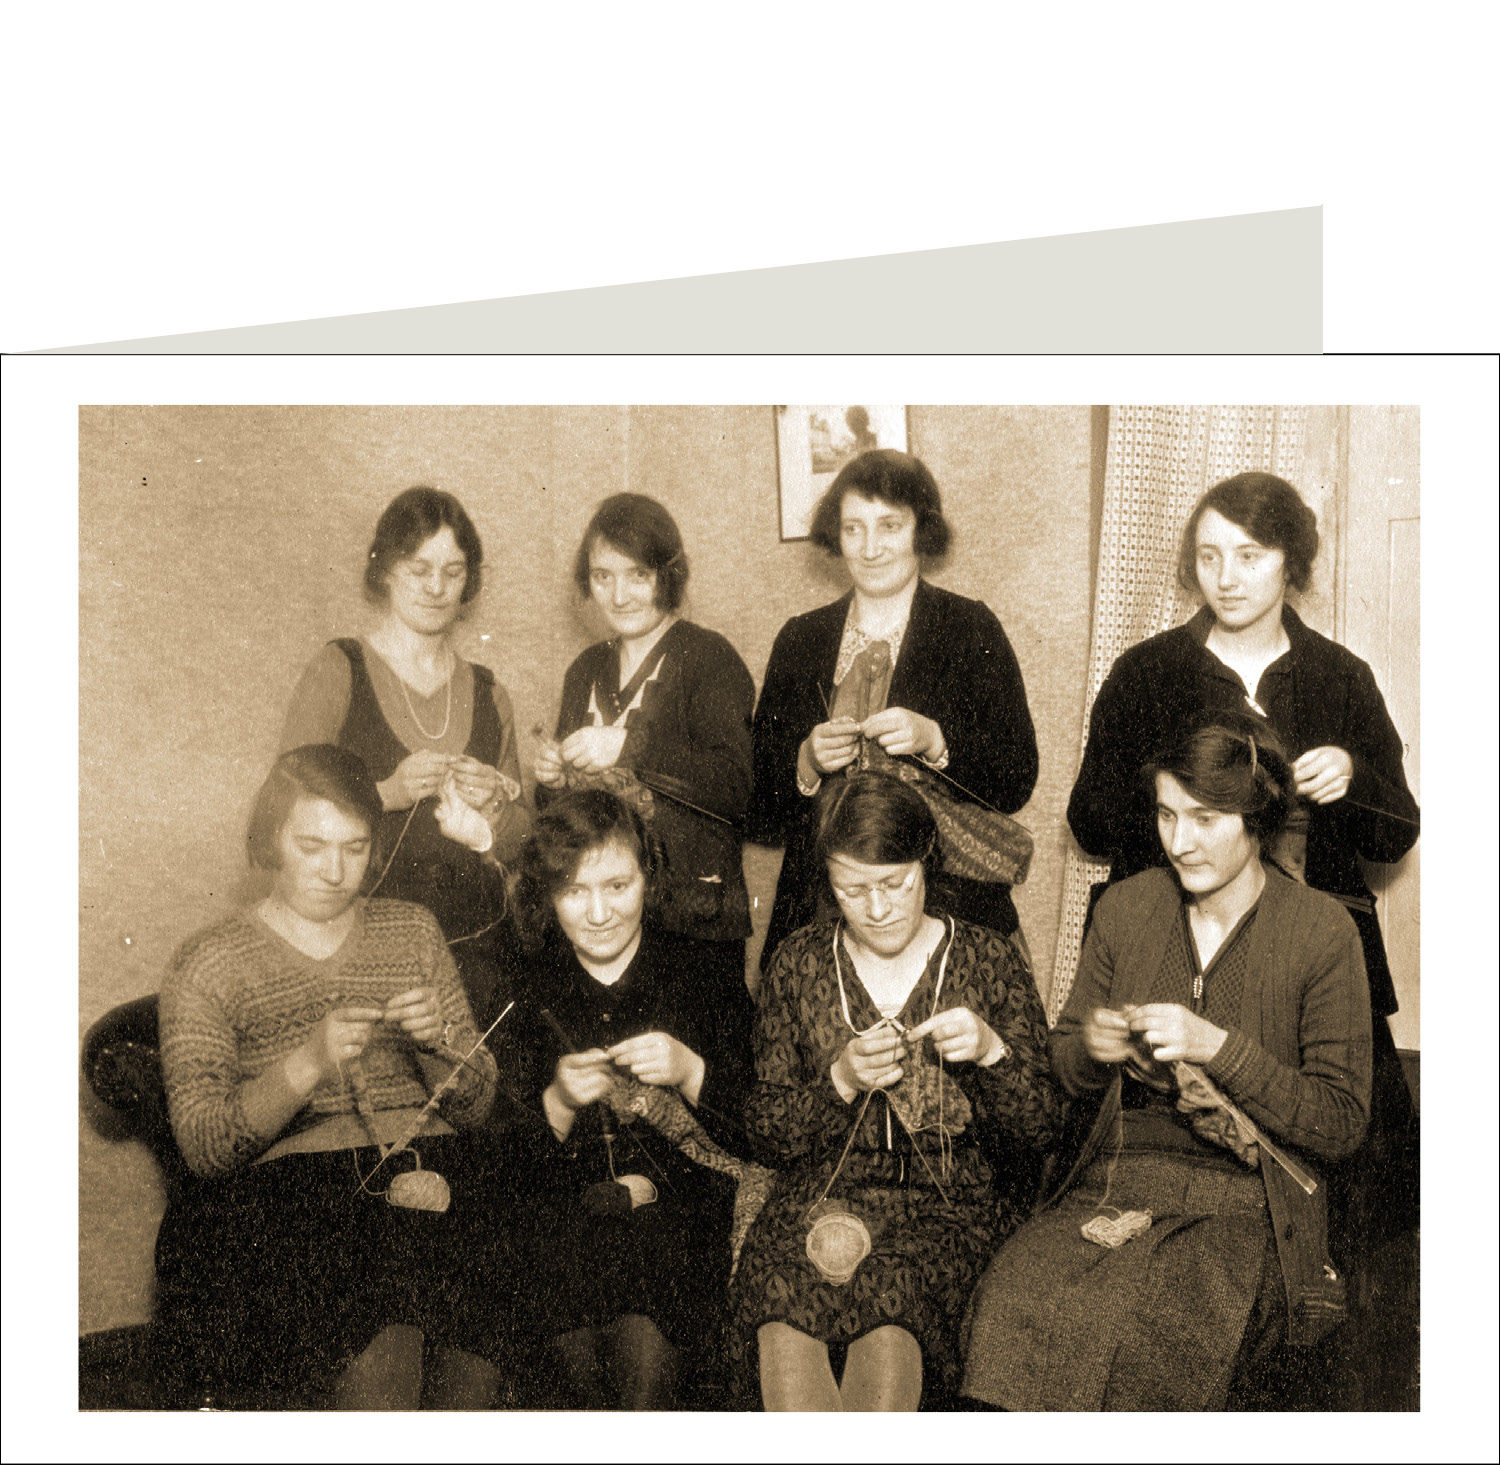 Correspondence greetings cards knit for peace knitting circle m4hsunfo